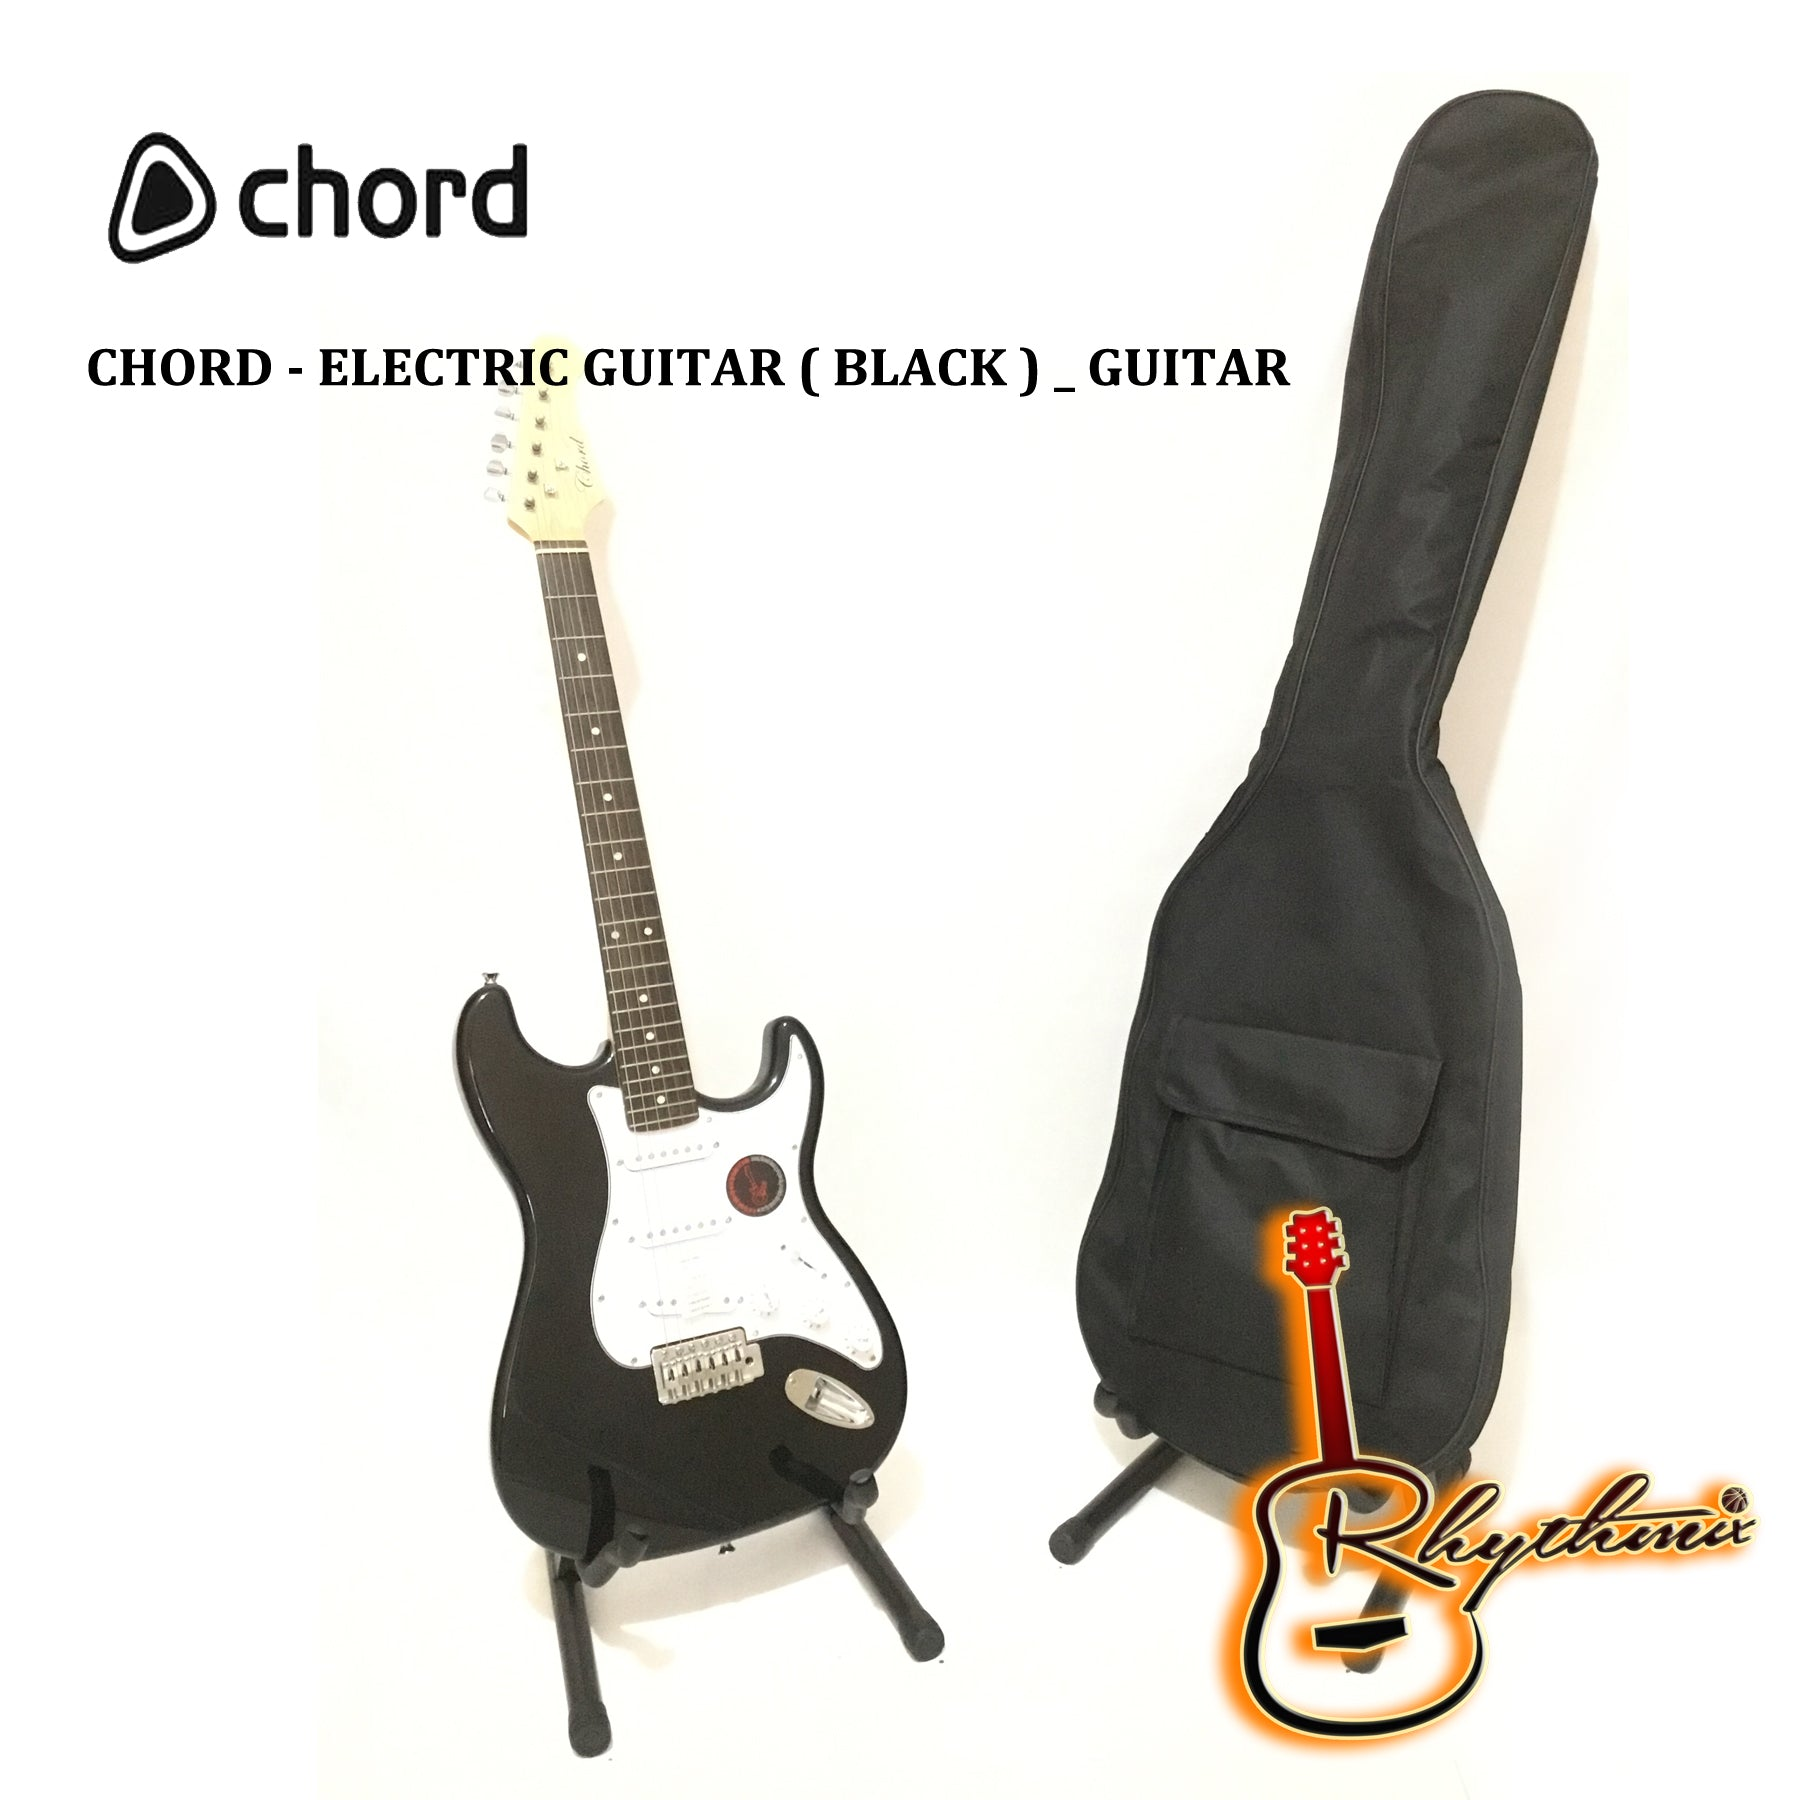 Chord Stratocaster Electric Guitar Black Rhythmix Enterprises